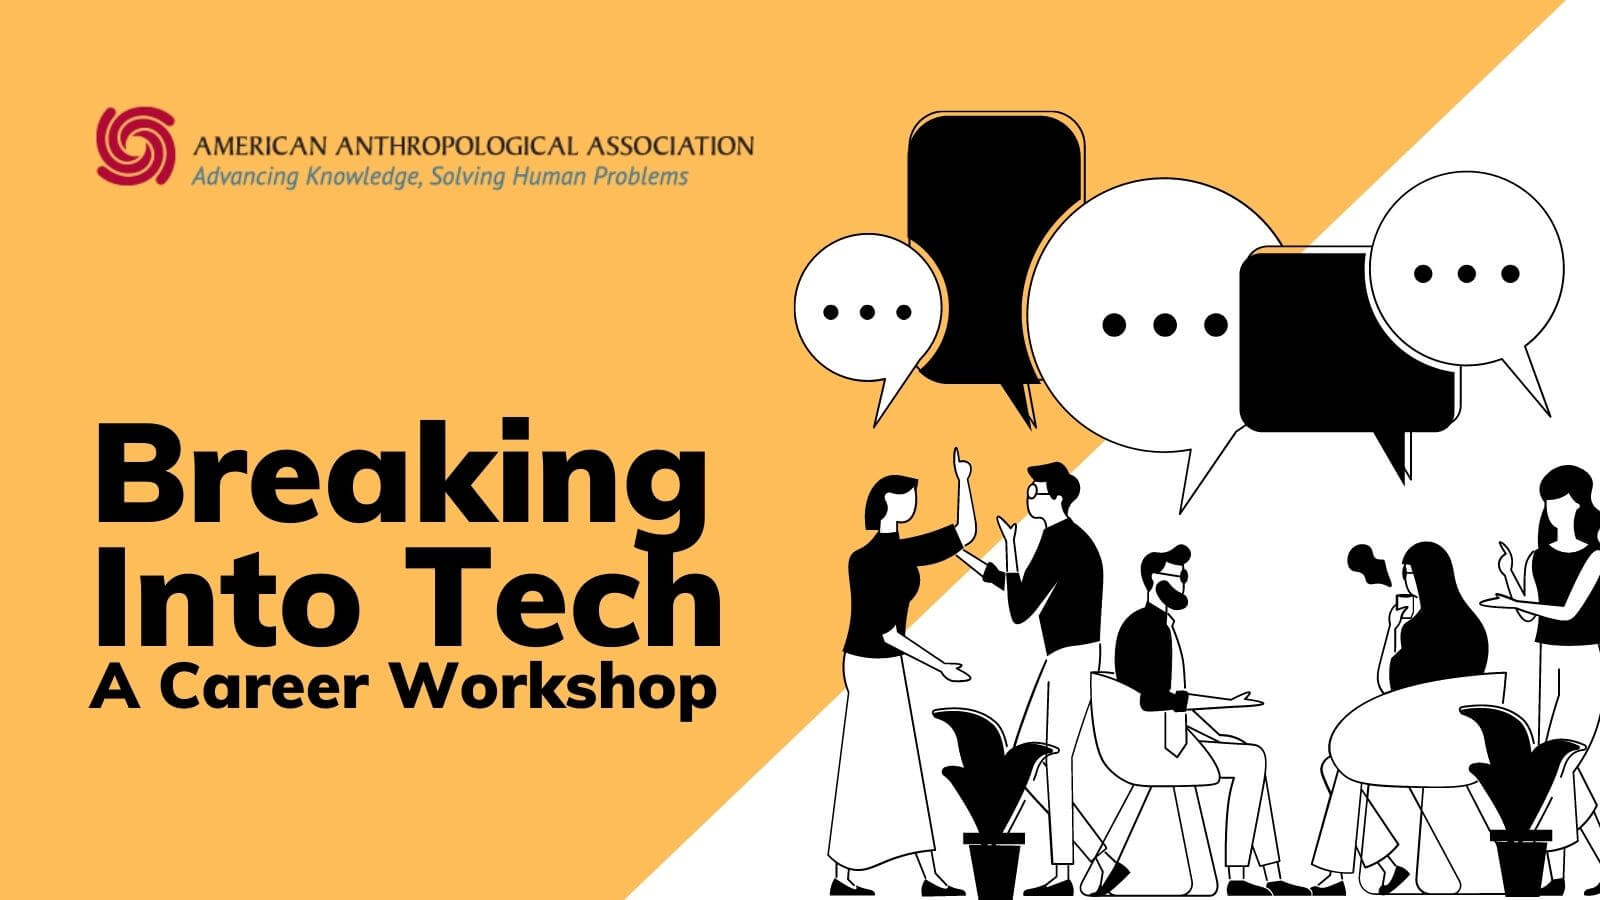 Breaking Into Tech - A Career Workshop by Matt Artz